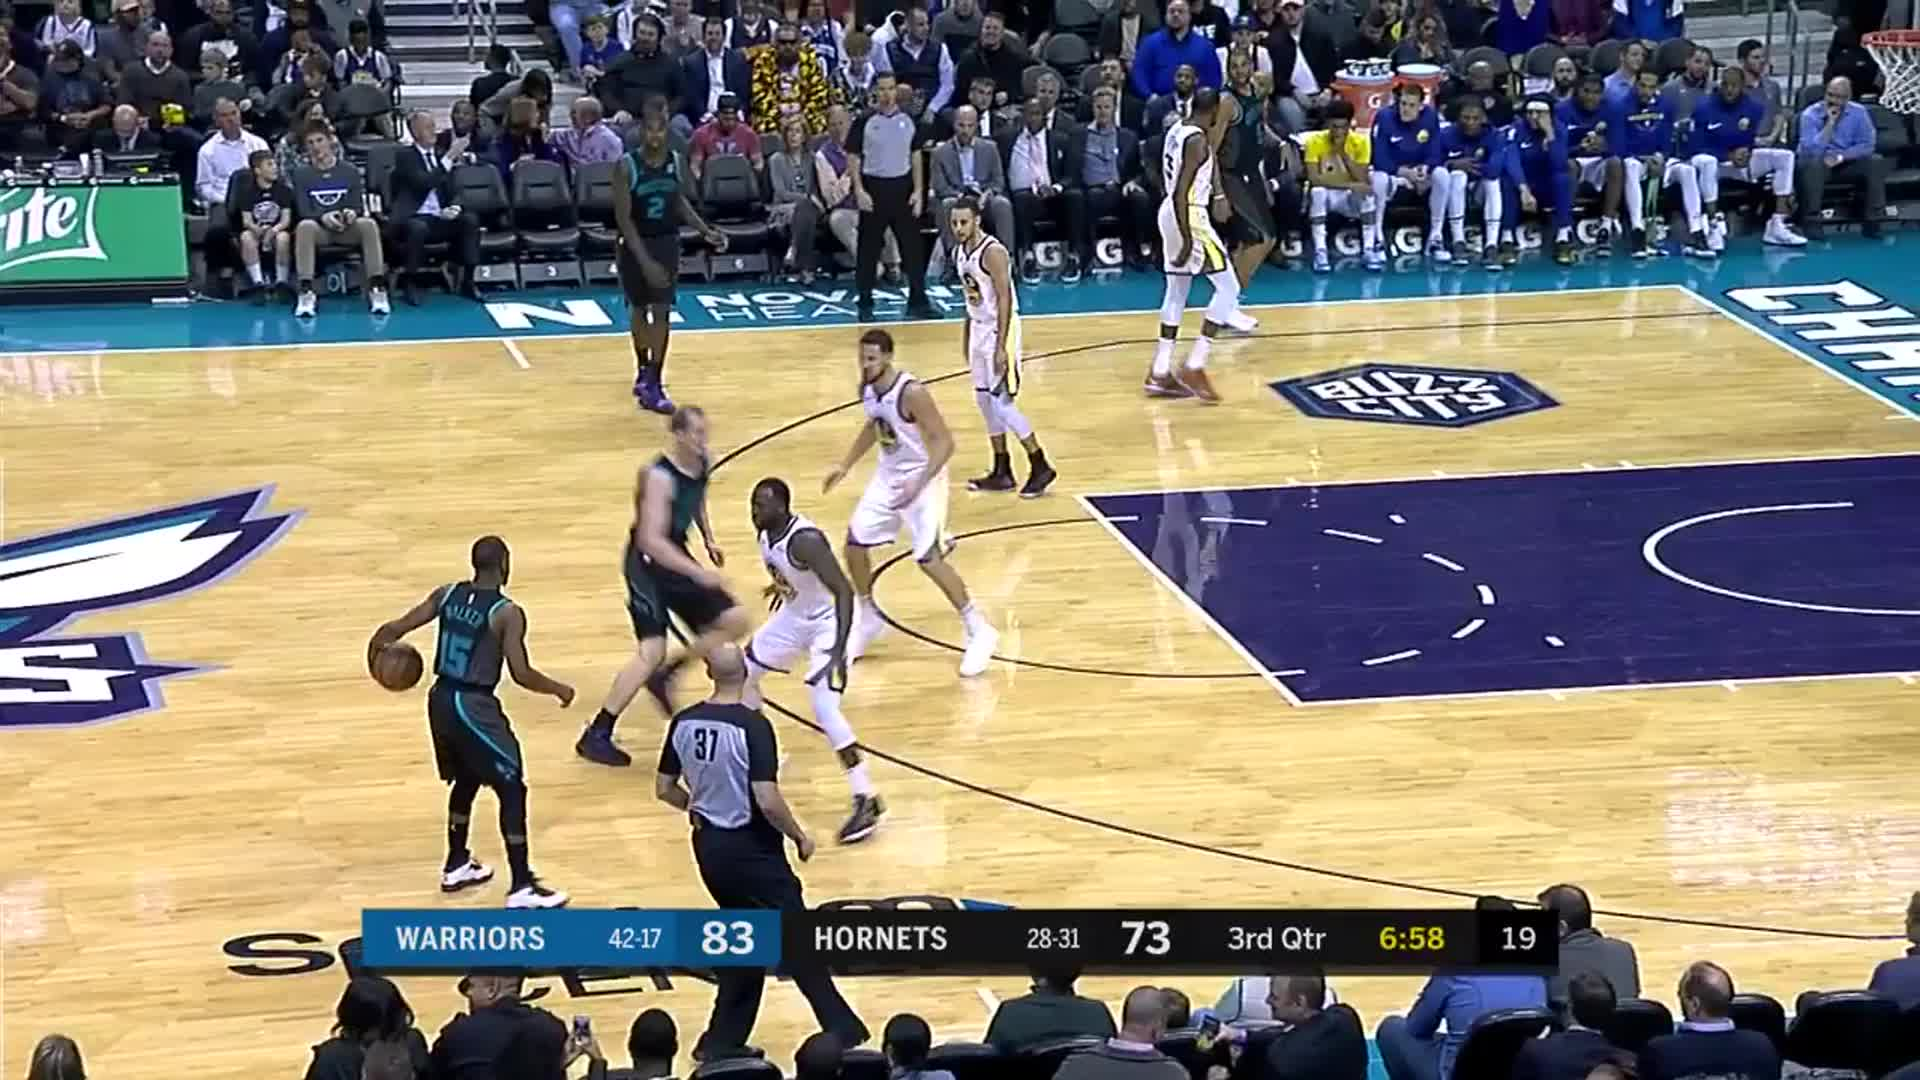 basketball, charlotte hornets, golden state warriors, hornets, warriors, 9eda6b56-f1c3-2a5c-ee95-f46d9a772d49.nba 3369001 1920x1080 5904 GIFs